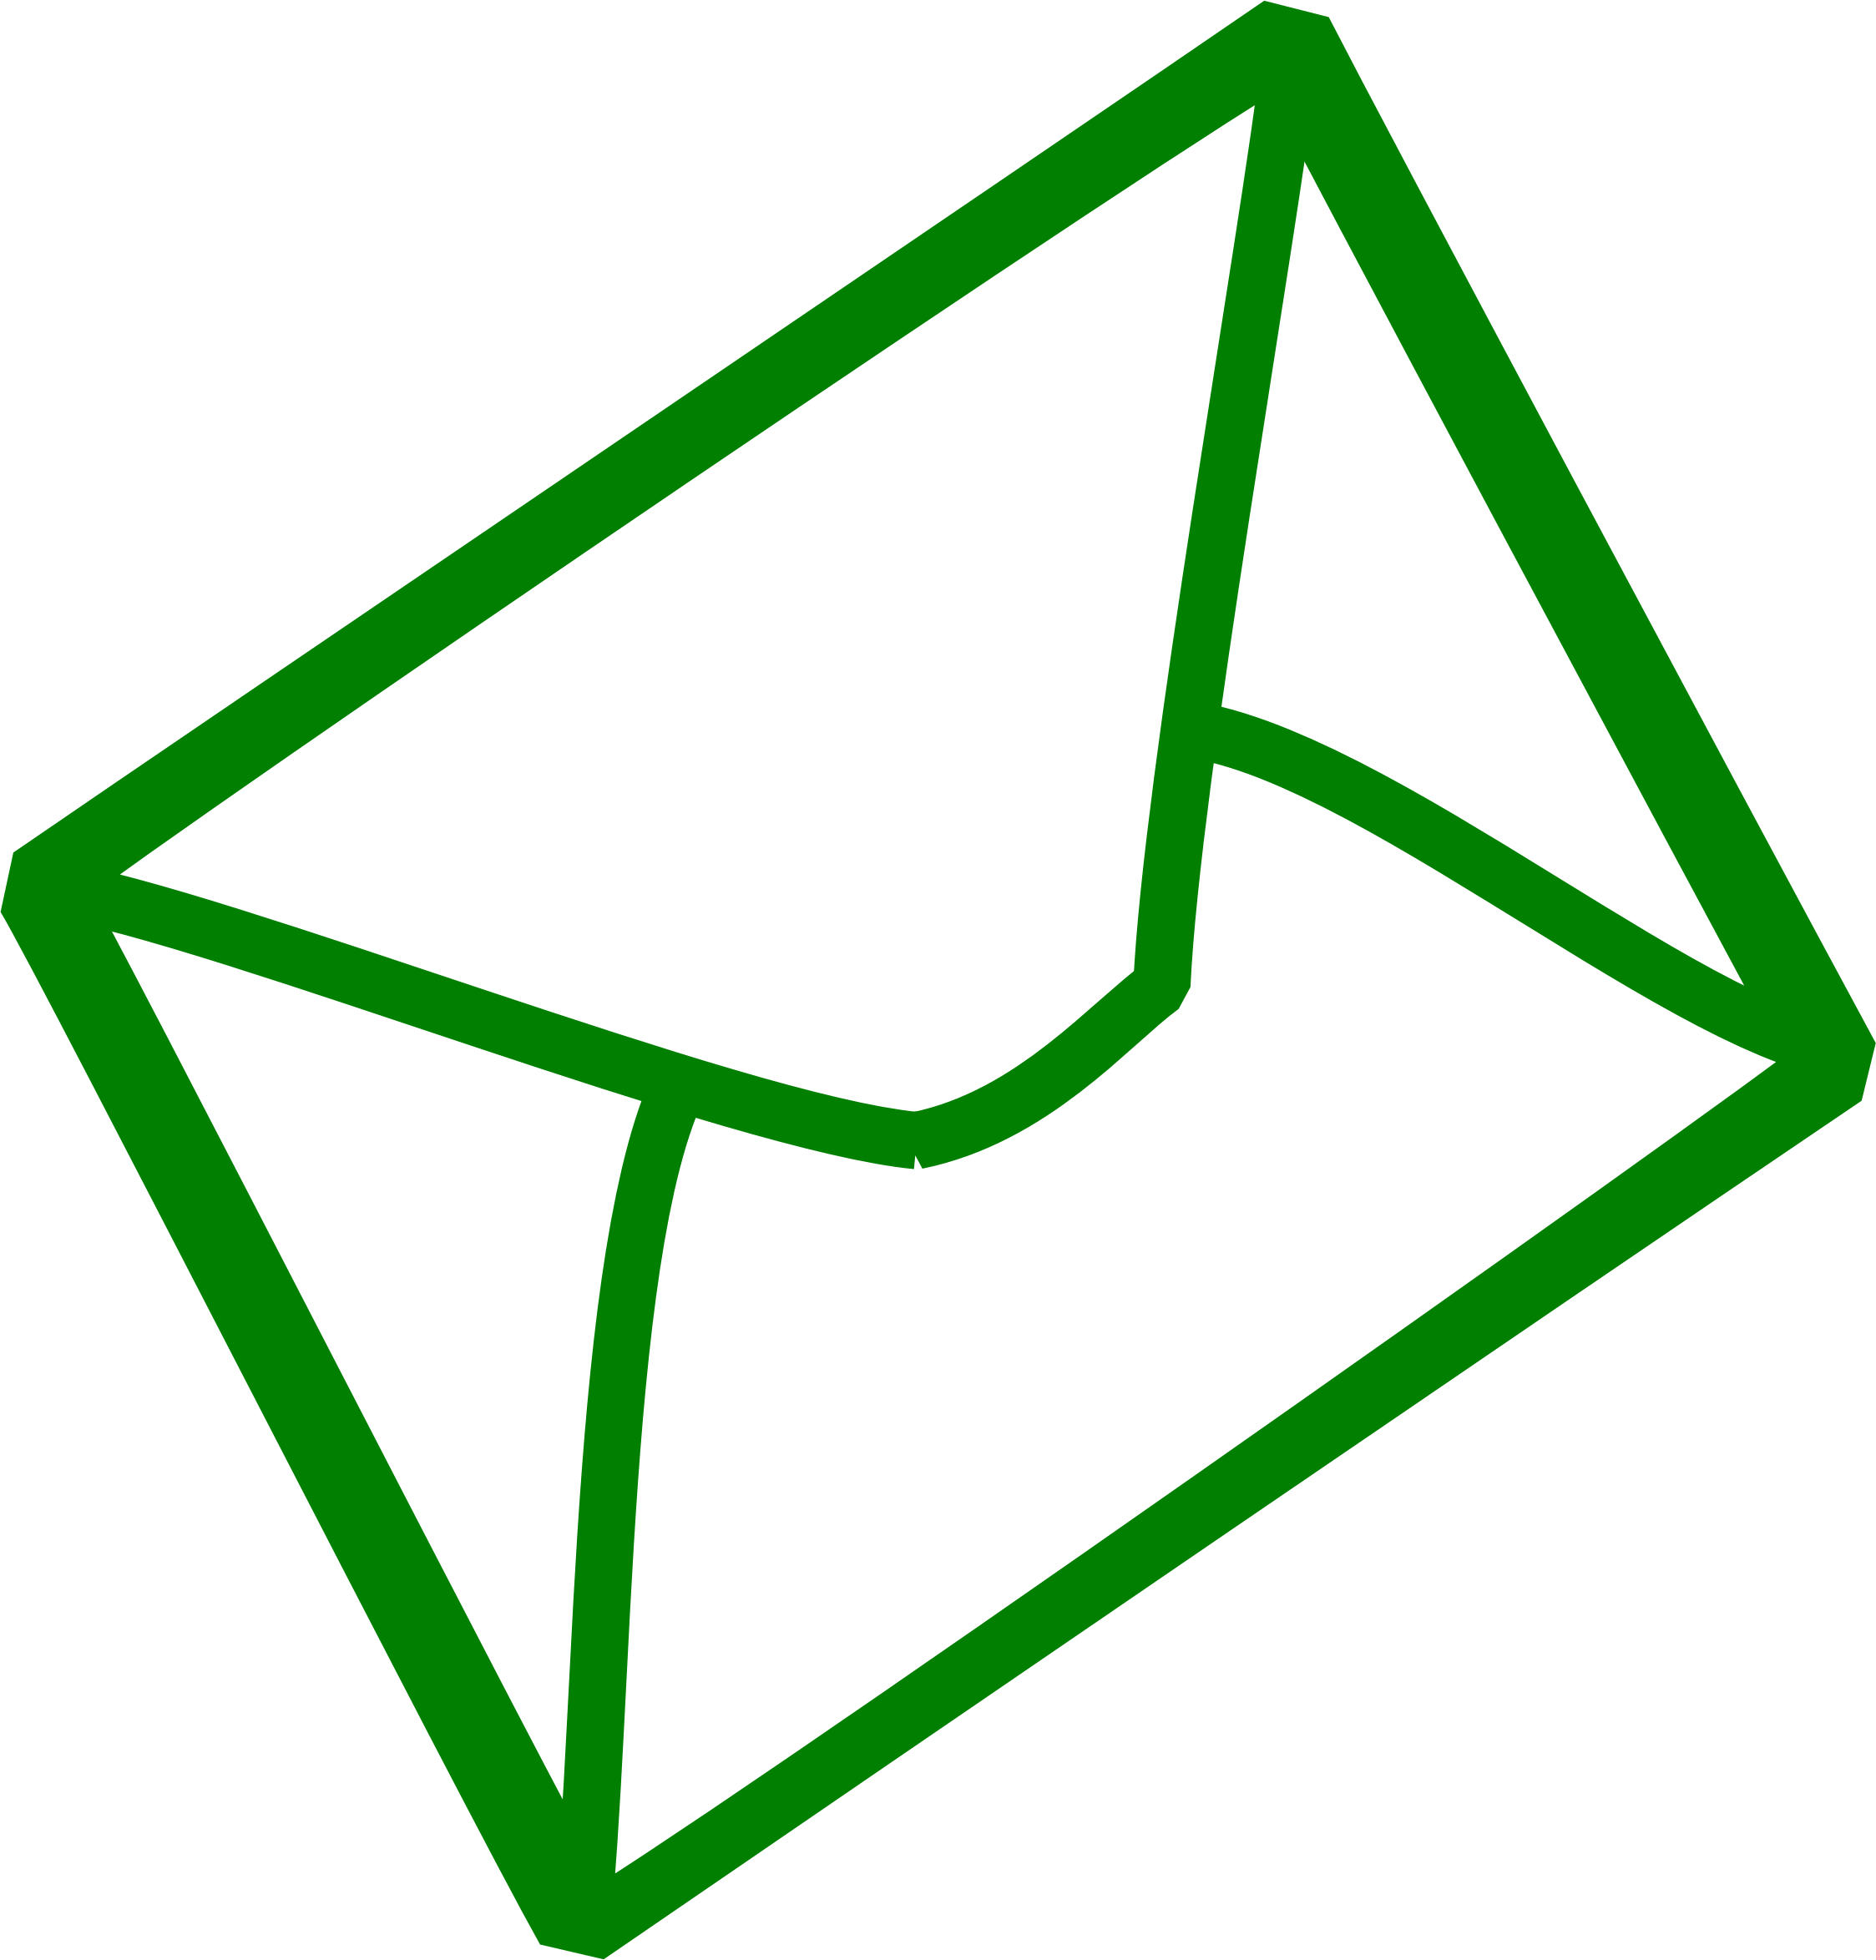 Mail clipart simple. Generic big image png